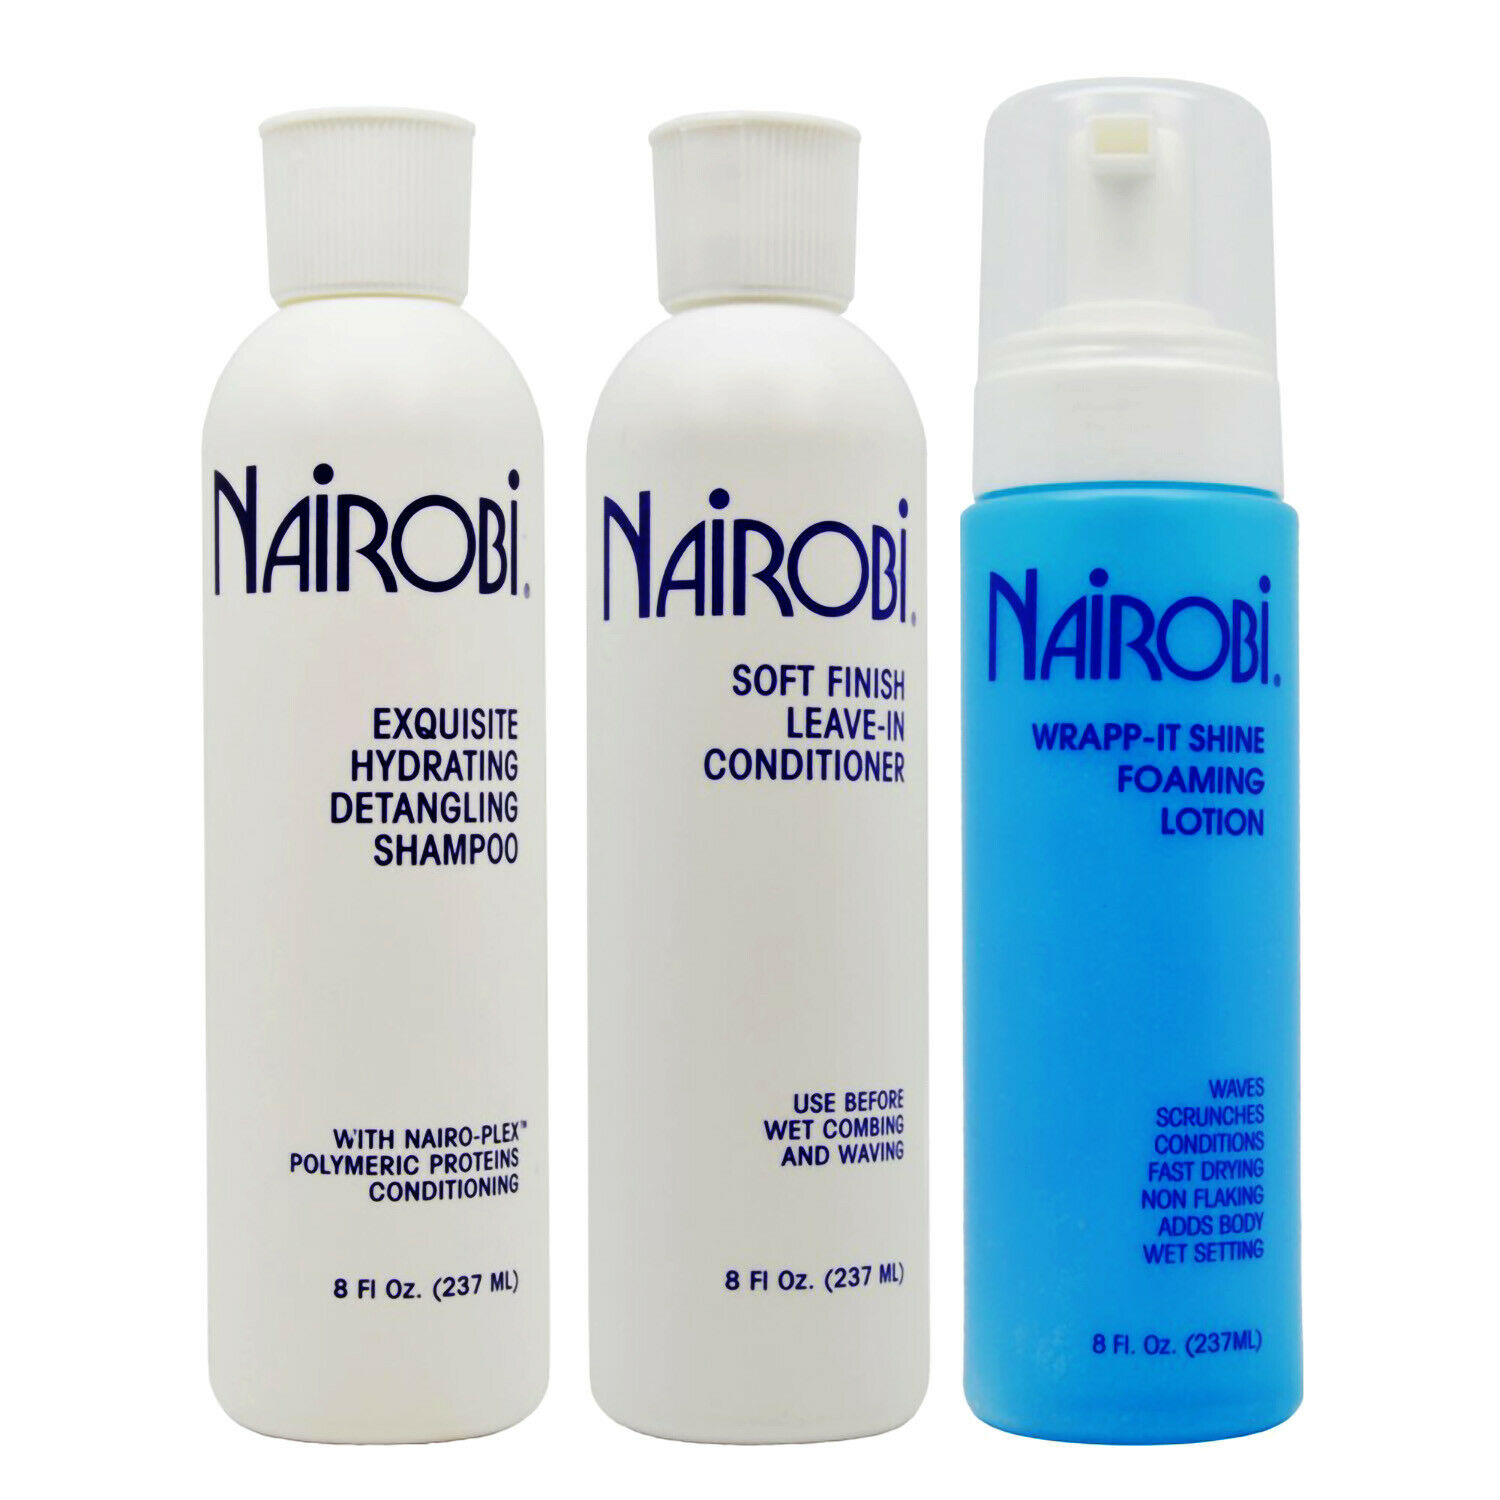 Nairobi Exquisite Hydrating Detangling Shampoo + Leave-In + Wrap-it Shine Set Hair Care & Styling